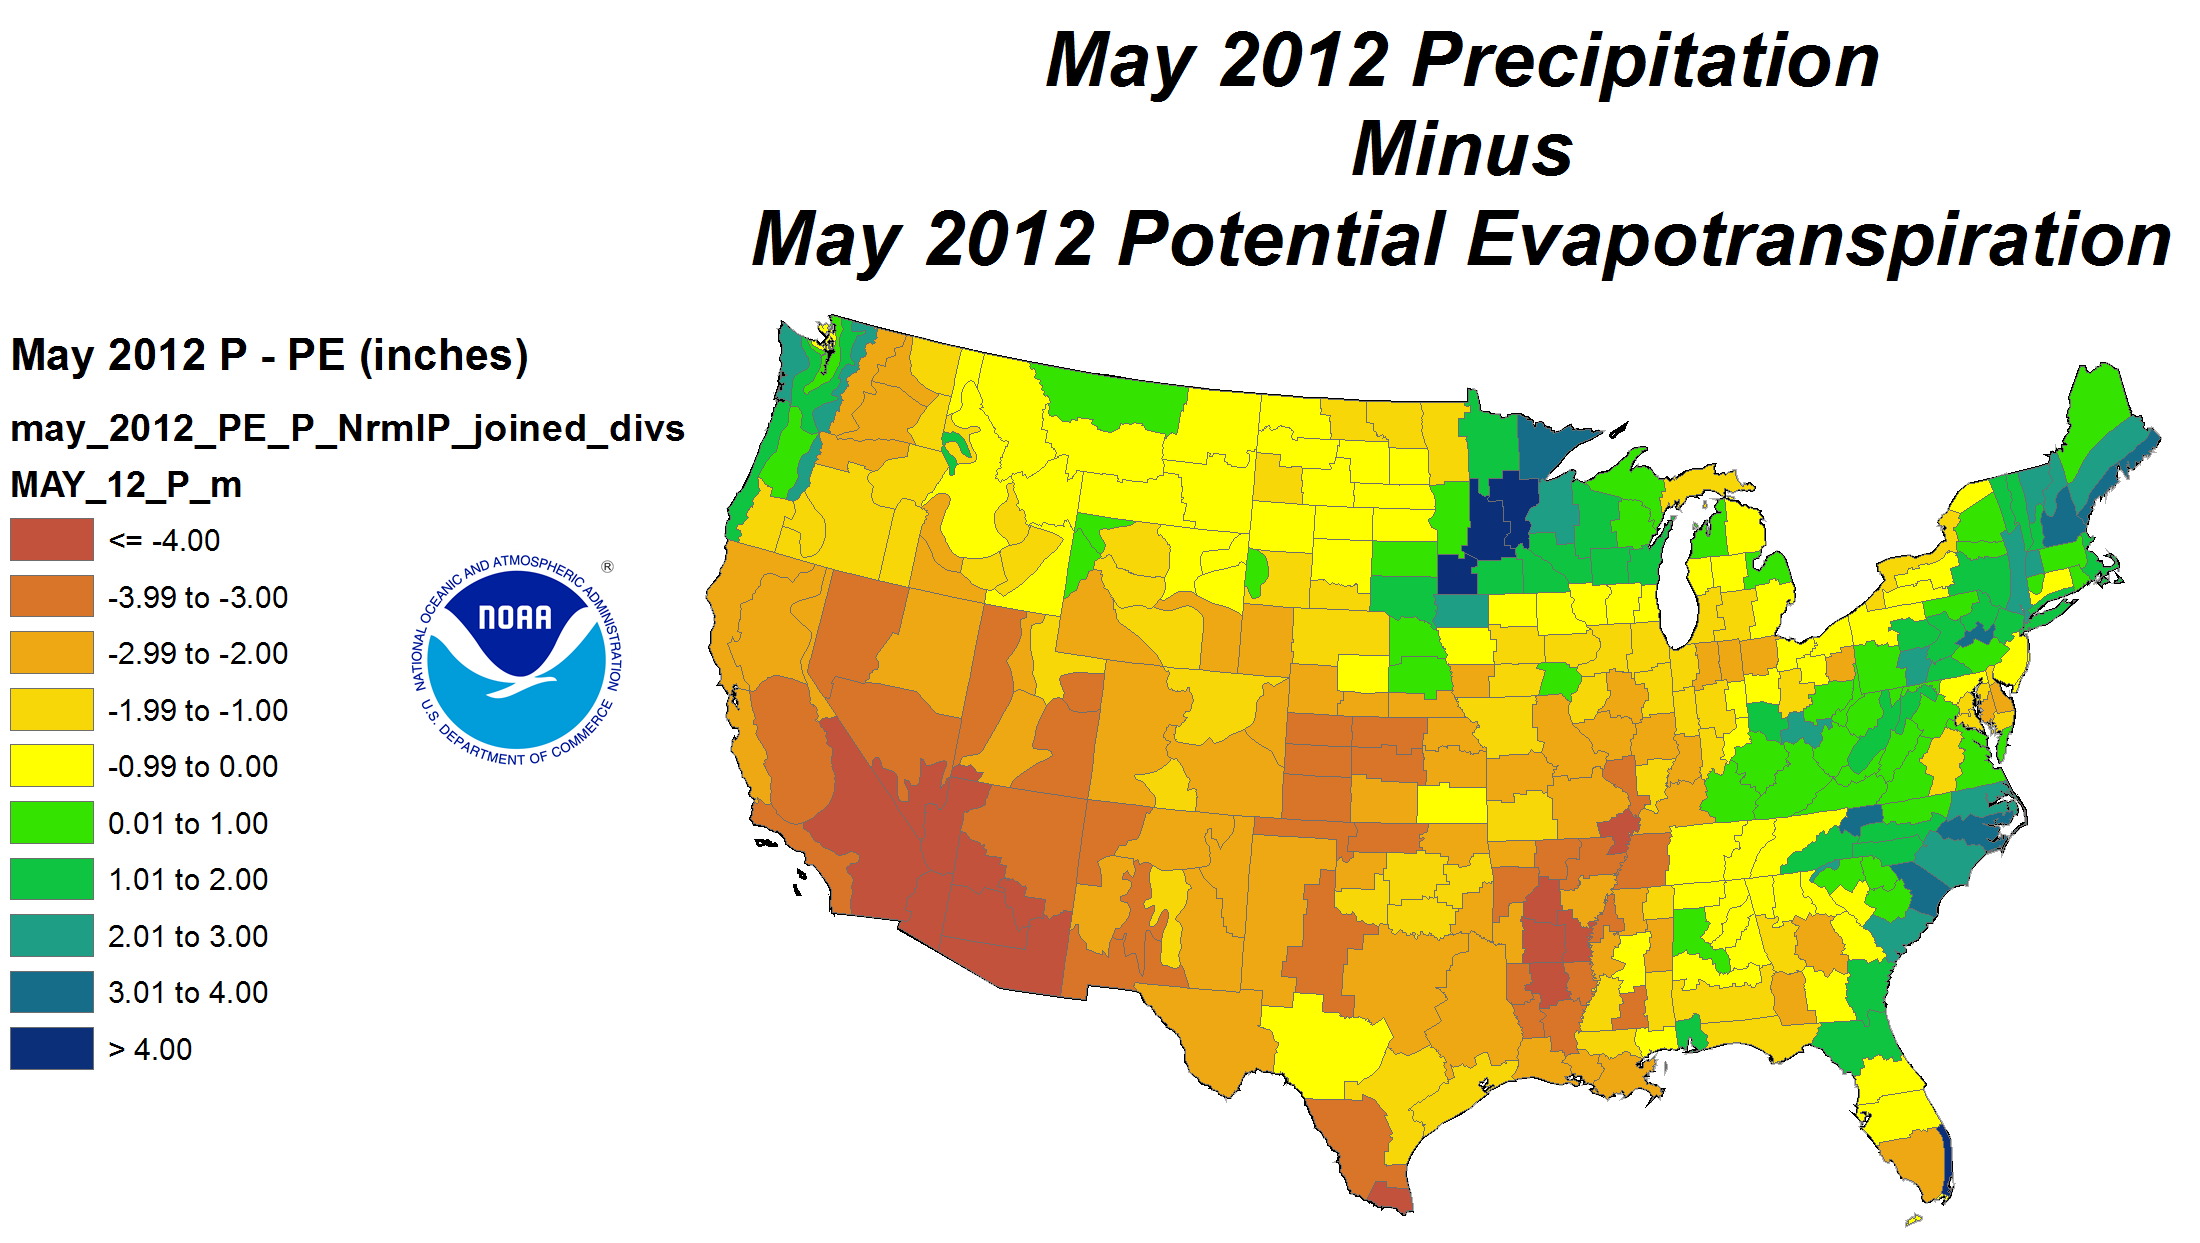 Precipitation minus Potential Evapotranspiration for May 2012 calculated using the Palmer Model